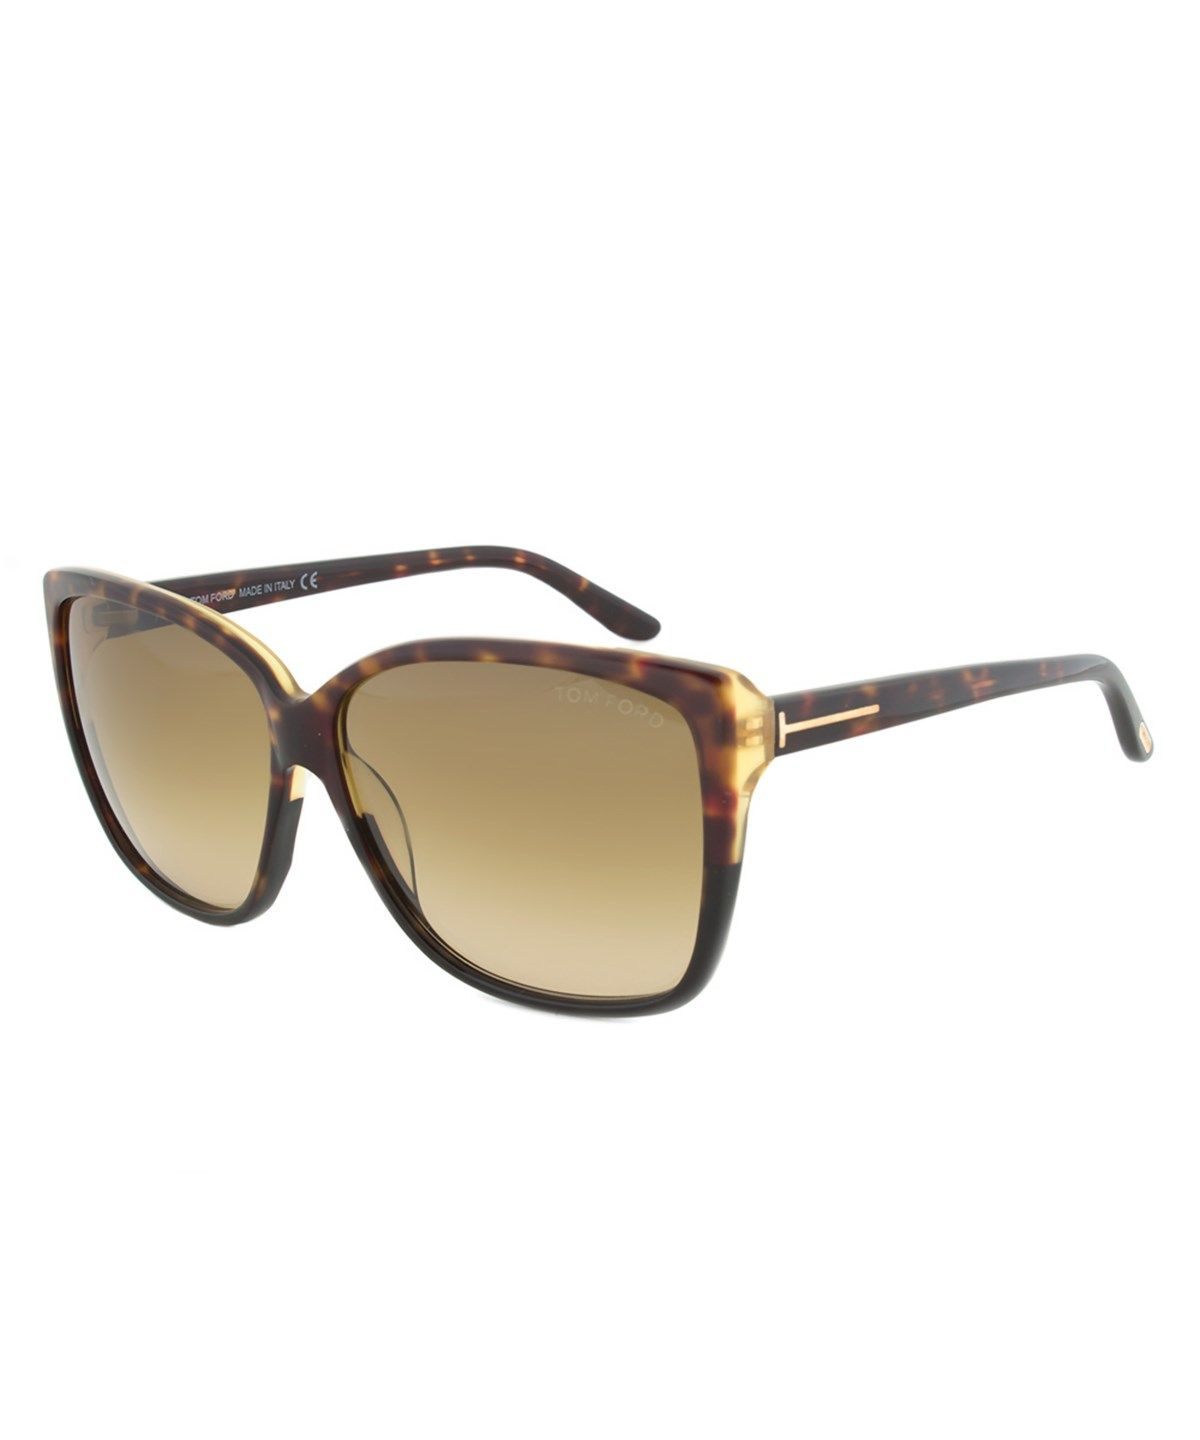 TOM FORD FT0228 05F LYDIA WOMEN'S OVERSIZED SHIELD SUNGLASSES'. #tomford #sunglasses